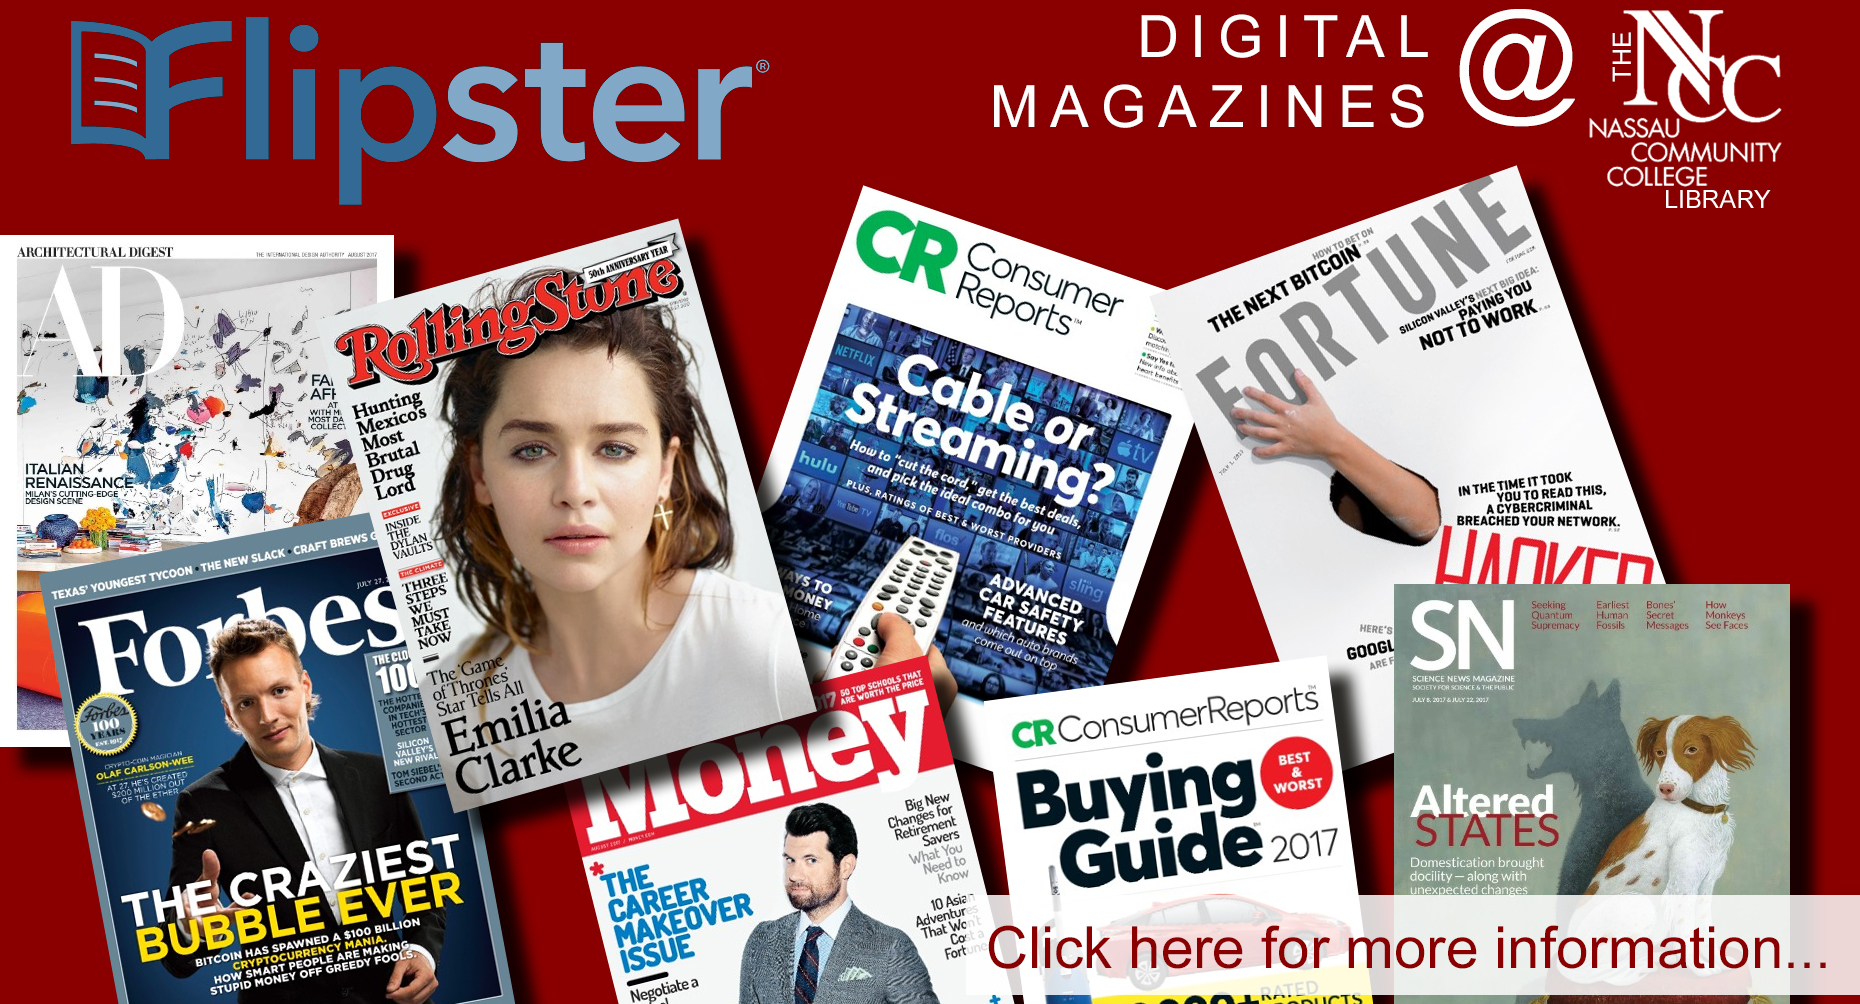 Link to Flipster for digital Magazines